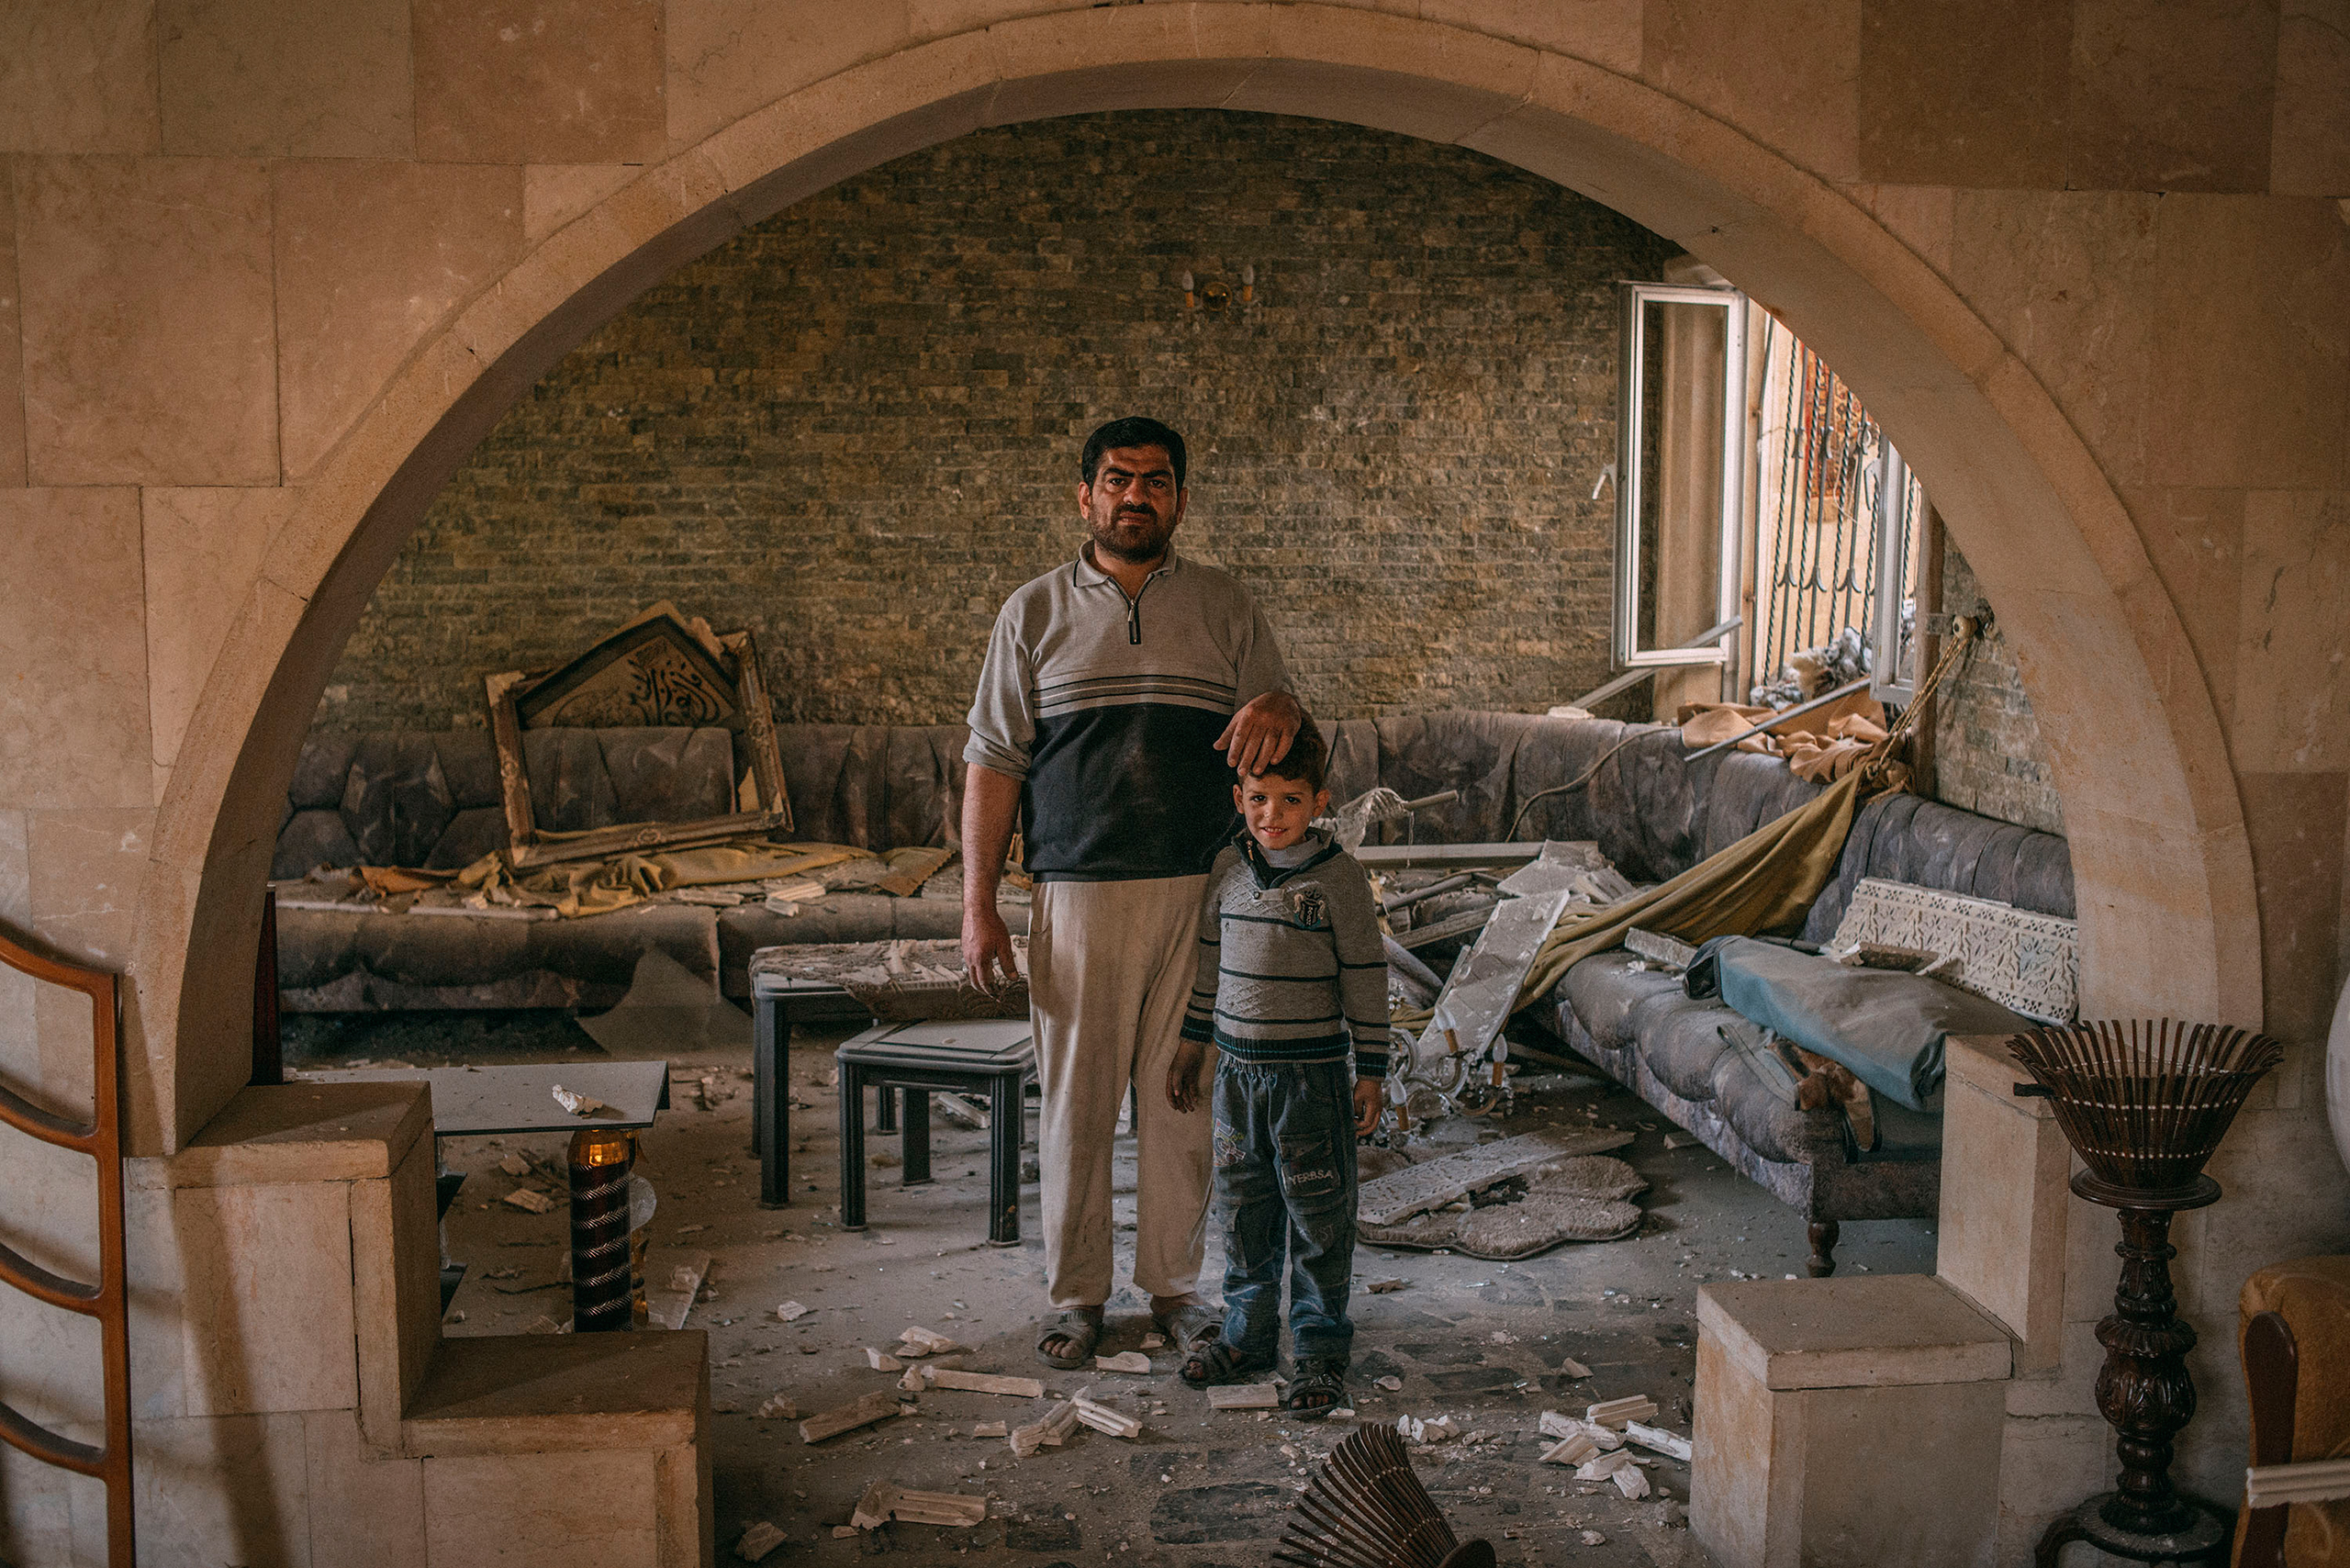 Median Hikmat al-Galou with his son inside their home that was ravaged in February during fighting between Iraqi forces and ISIS in southwest Mosul on March 29, 2017.